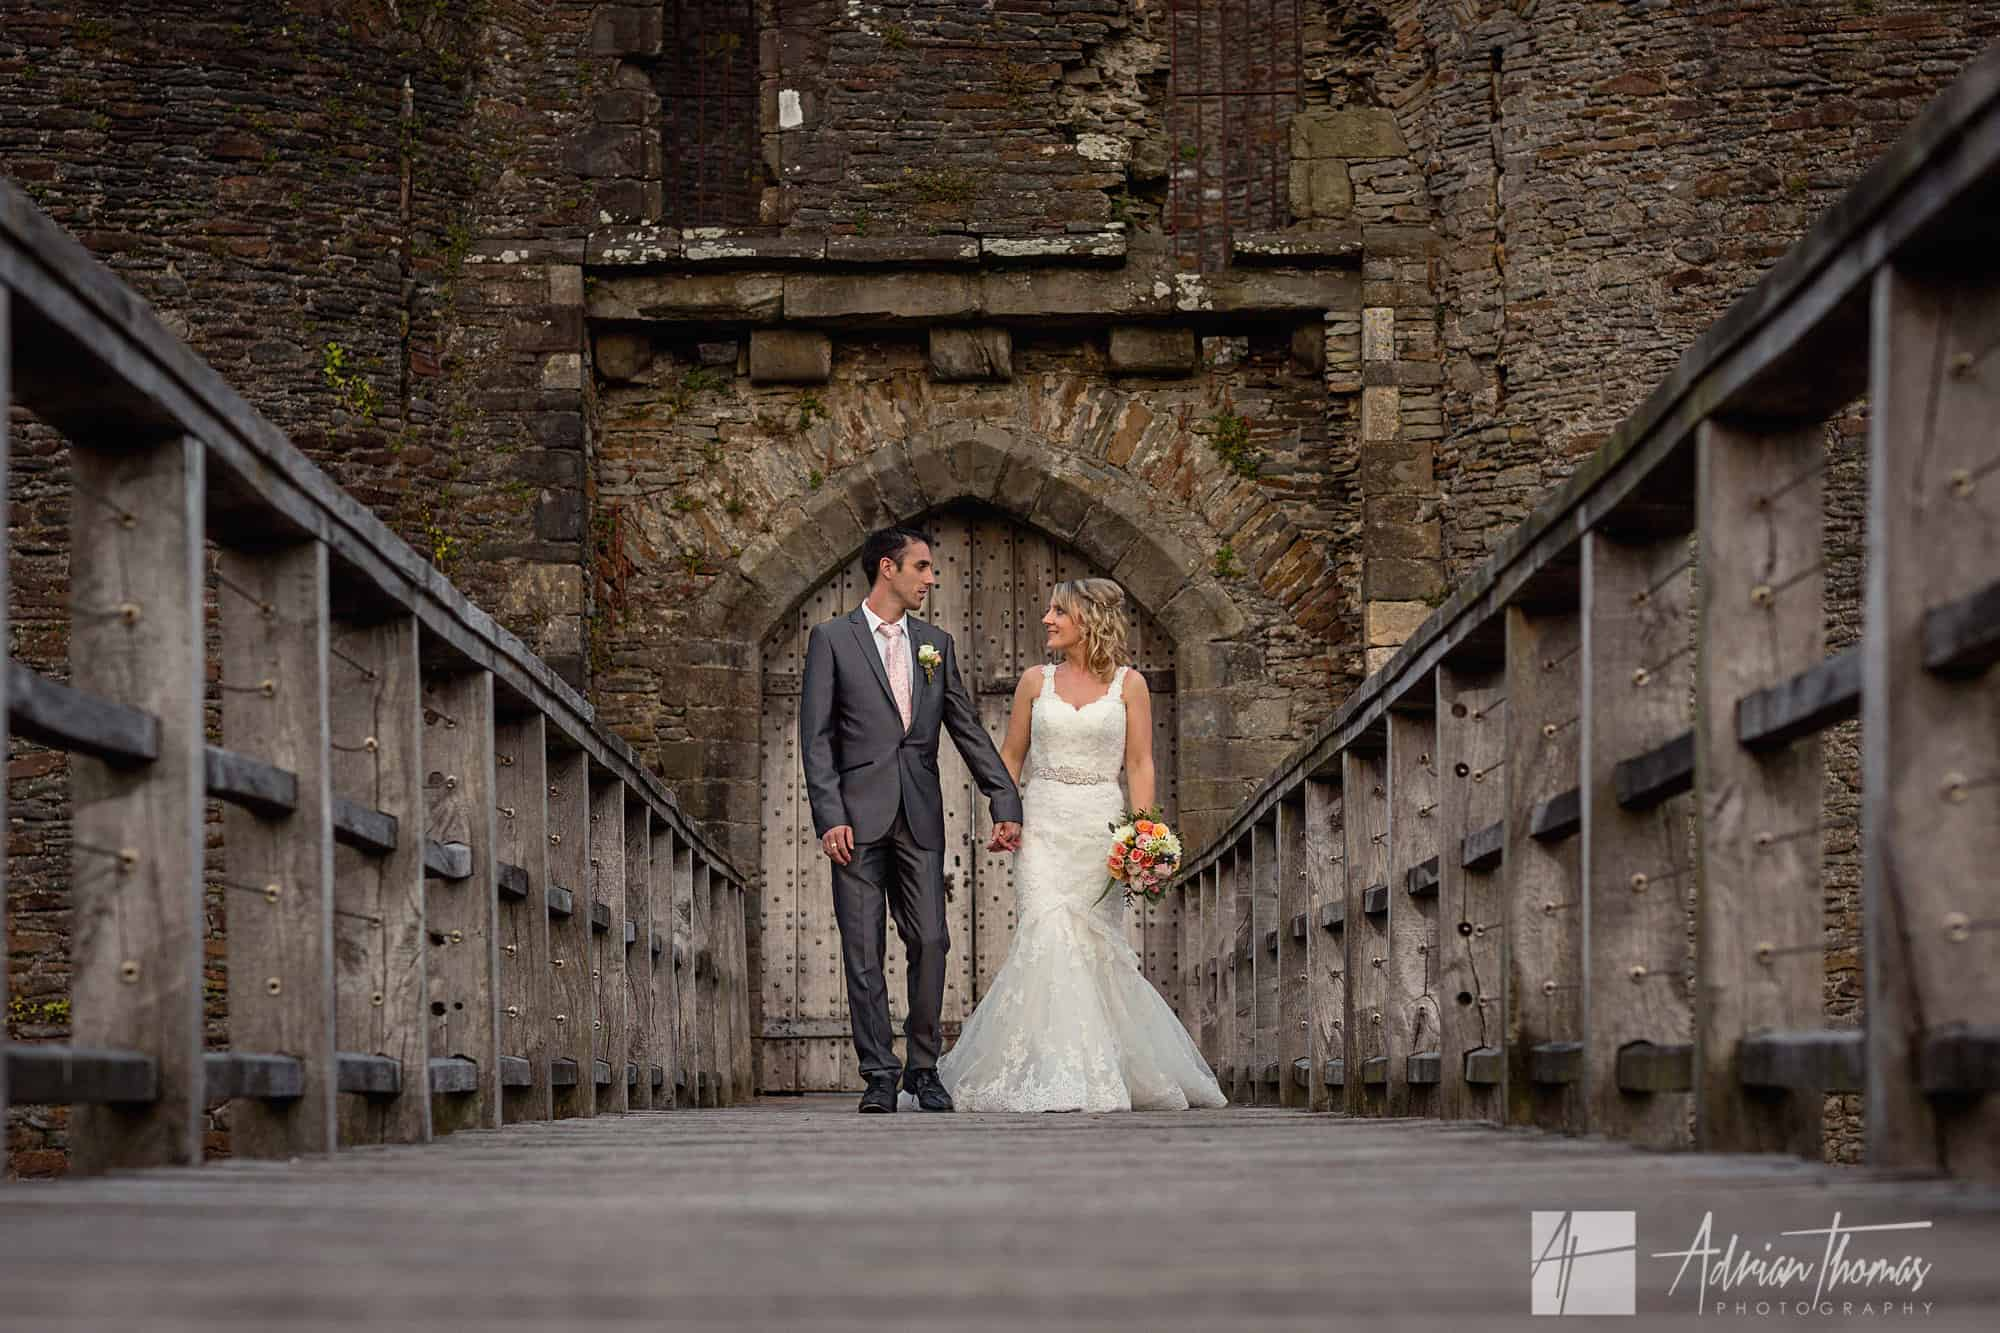 Bride and groom portrait at Caerphilly Castle Wedding